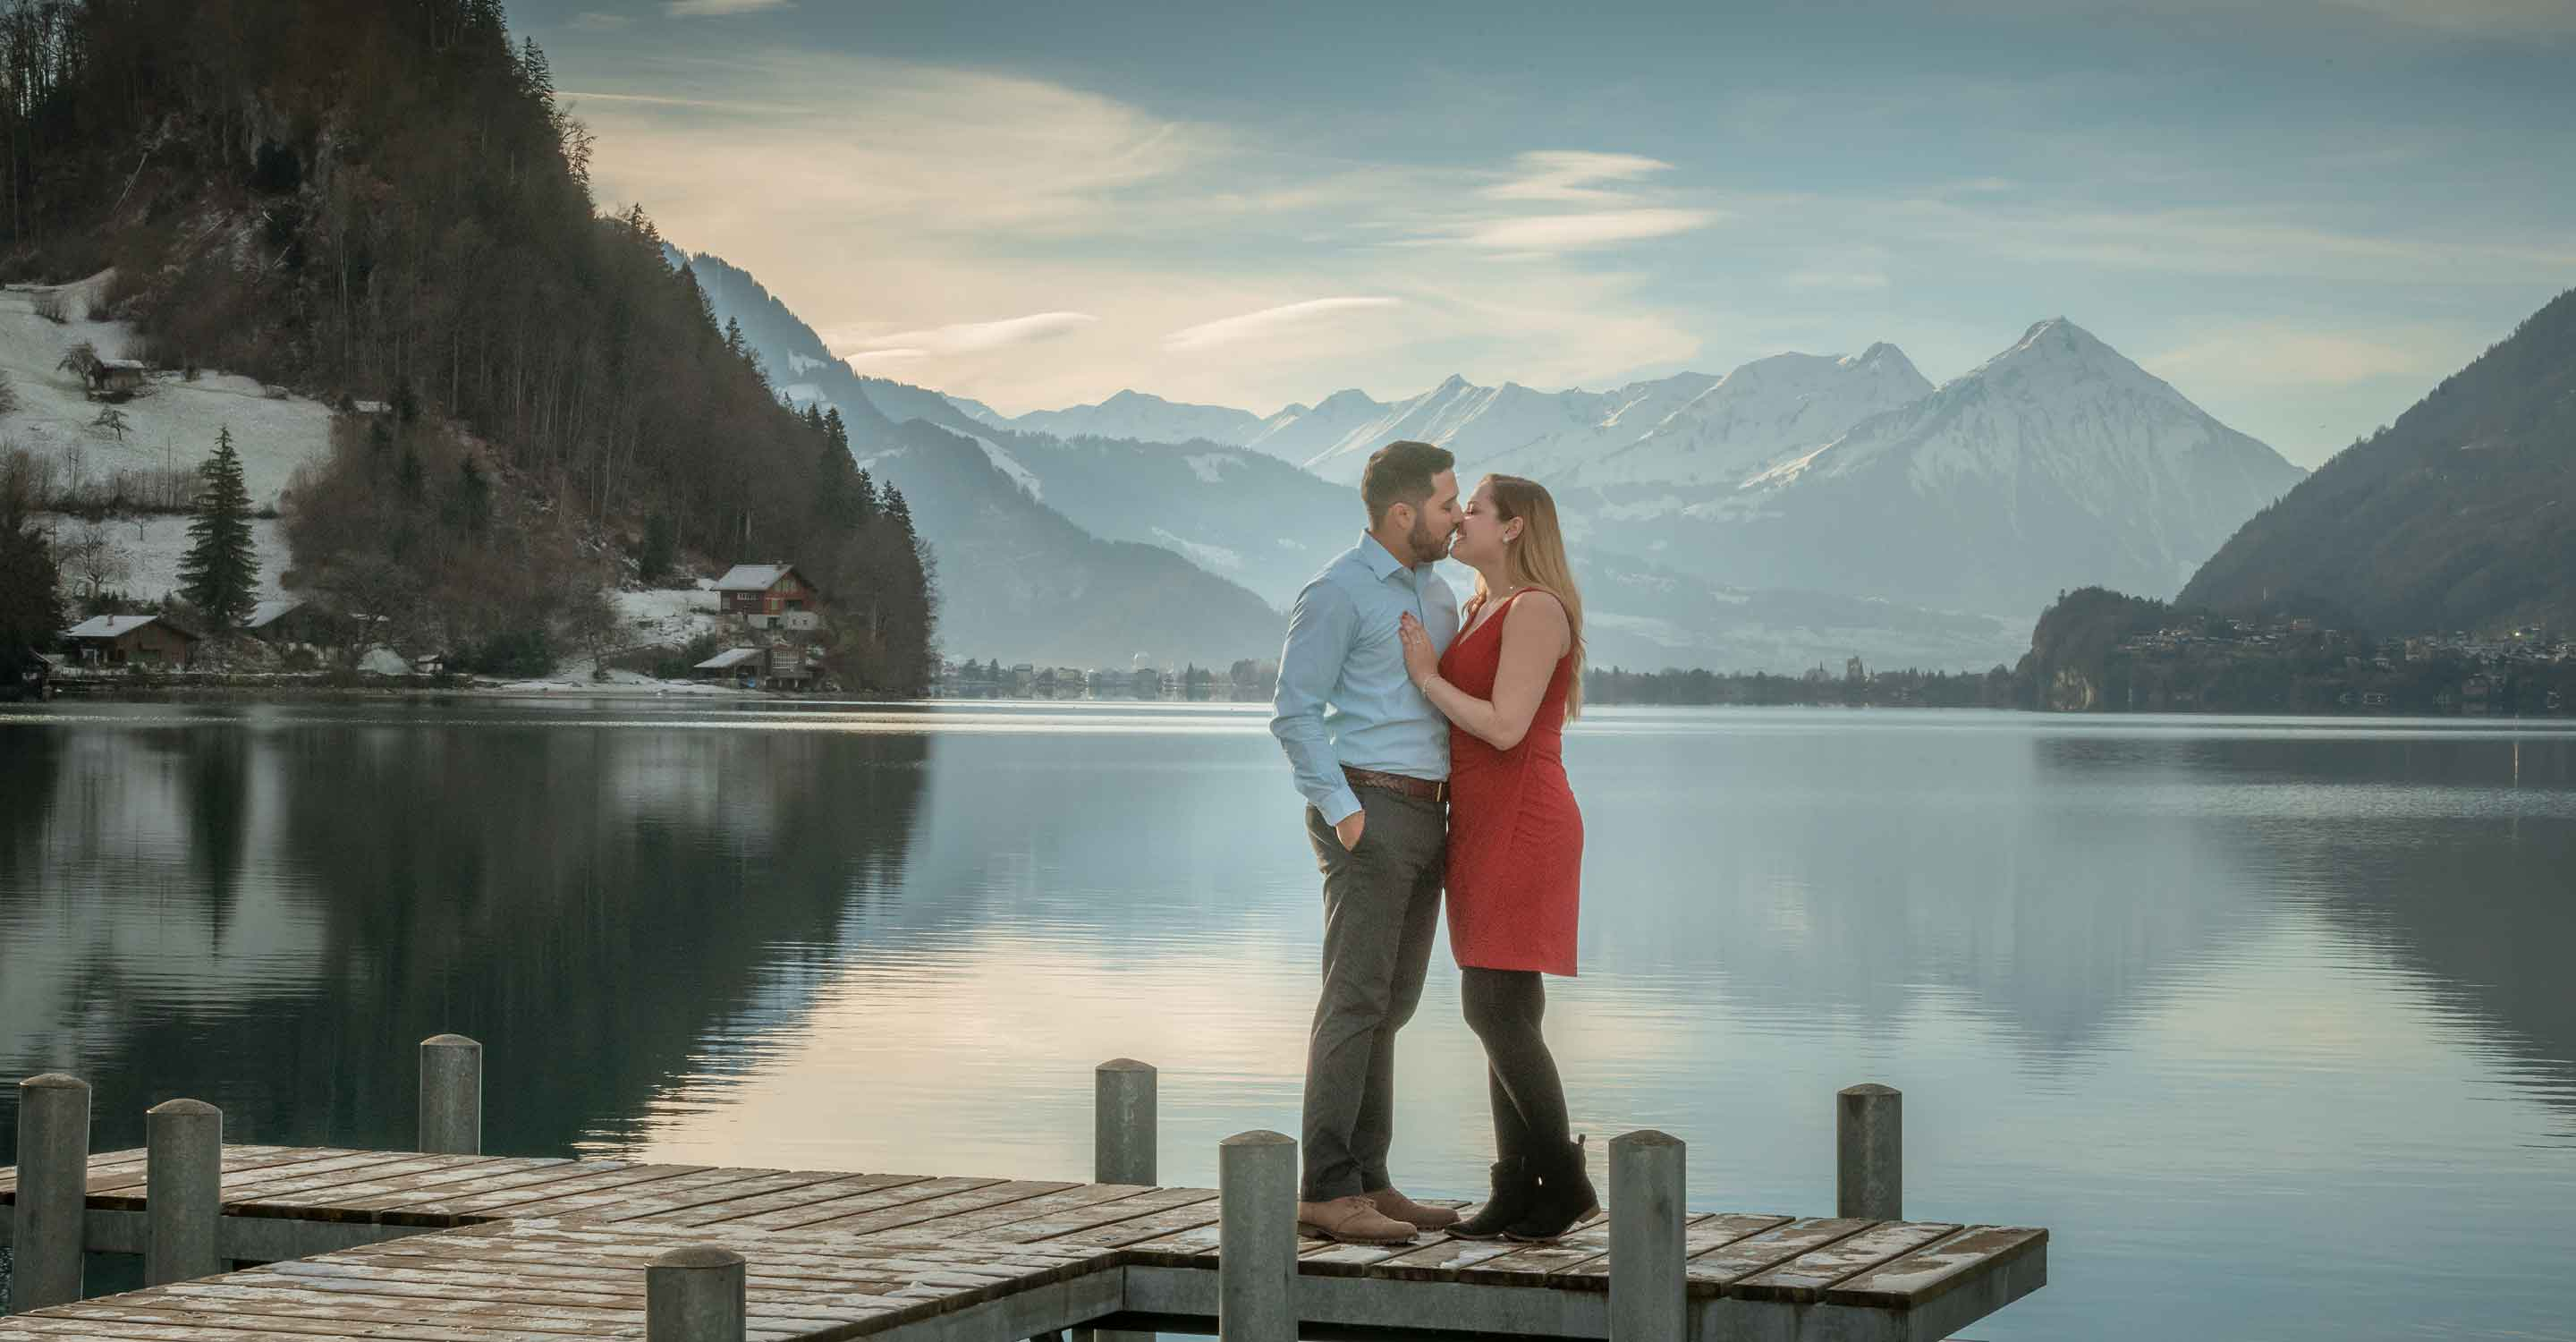 Romantic photo shoot in Iseltwald